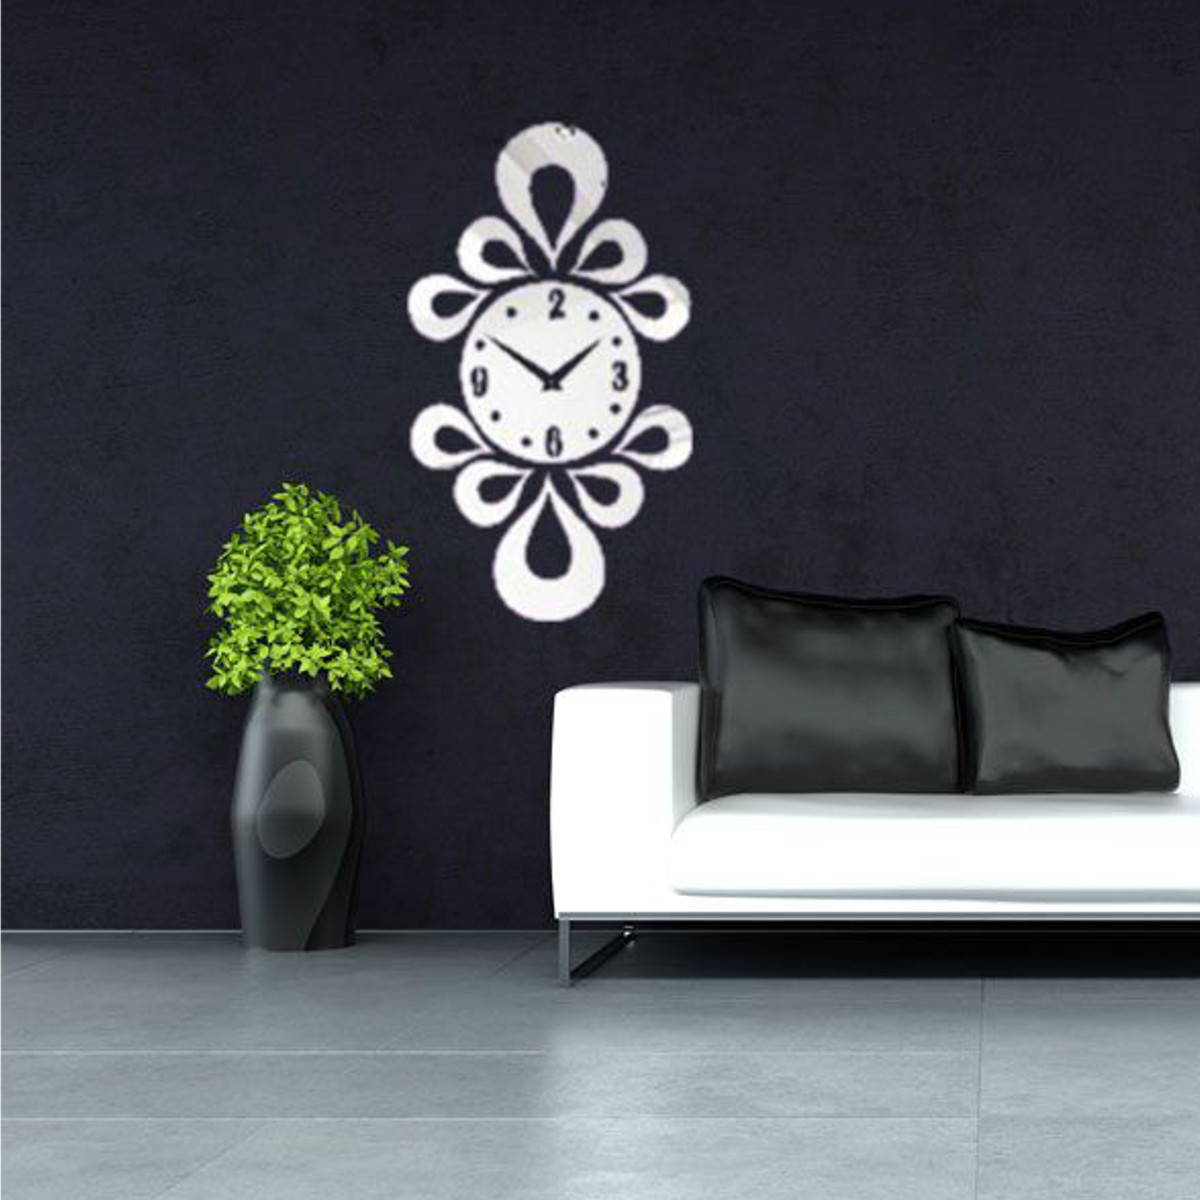 Modern acrylic mirror surface diy large wall clock sticker home time decal decor ebay - Wall decor mirror home accents ...